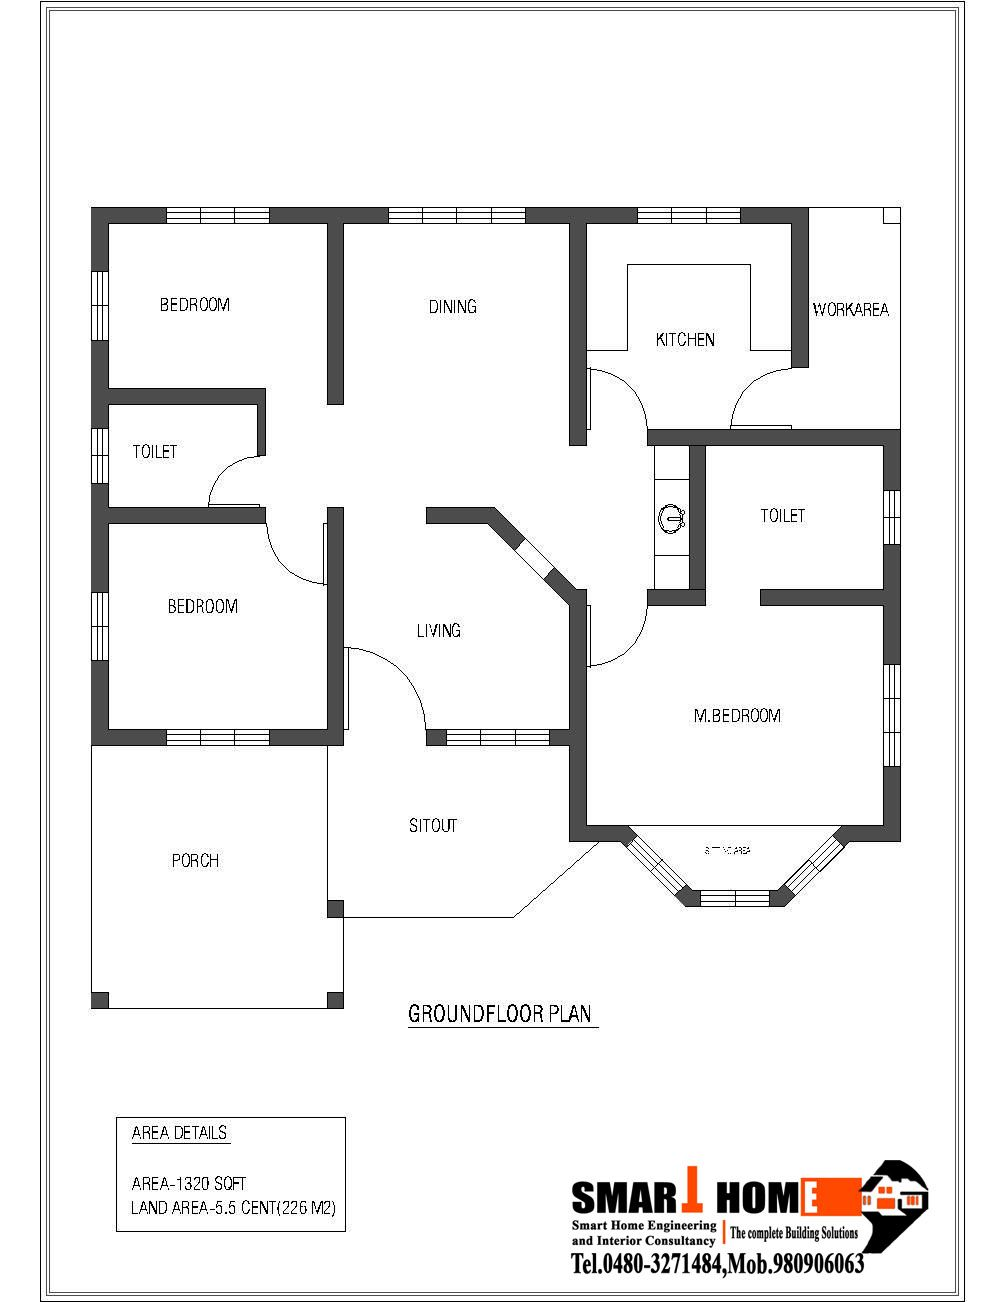 1320 sqft kerala style 3 bedroom house plan from smart for Kerala style house plans with photos